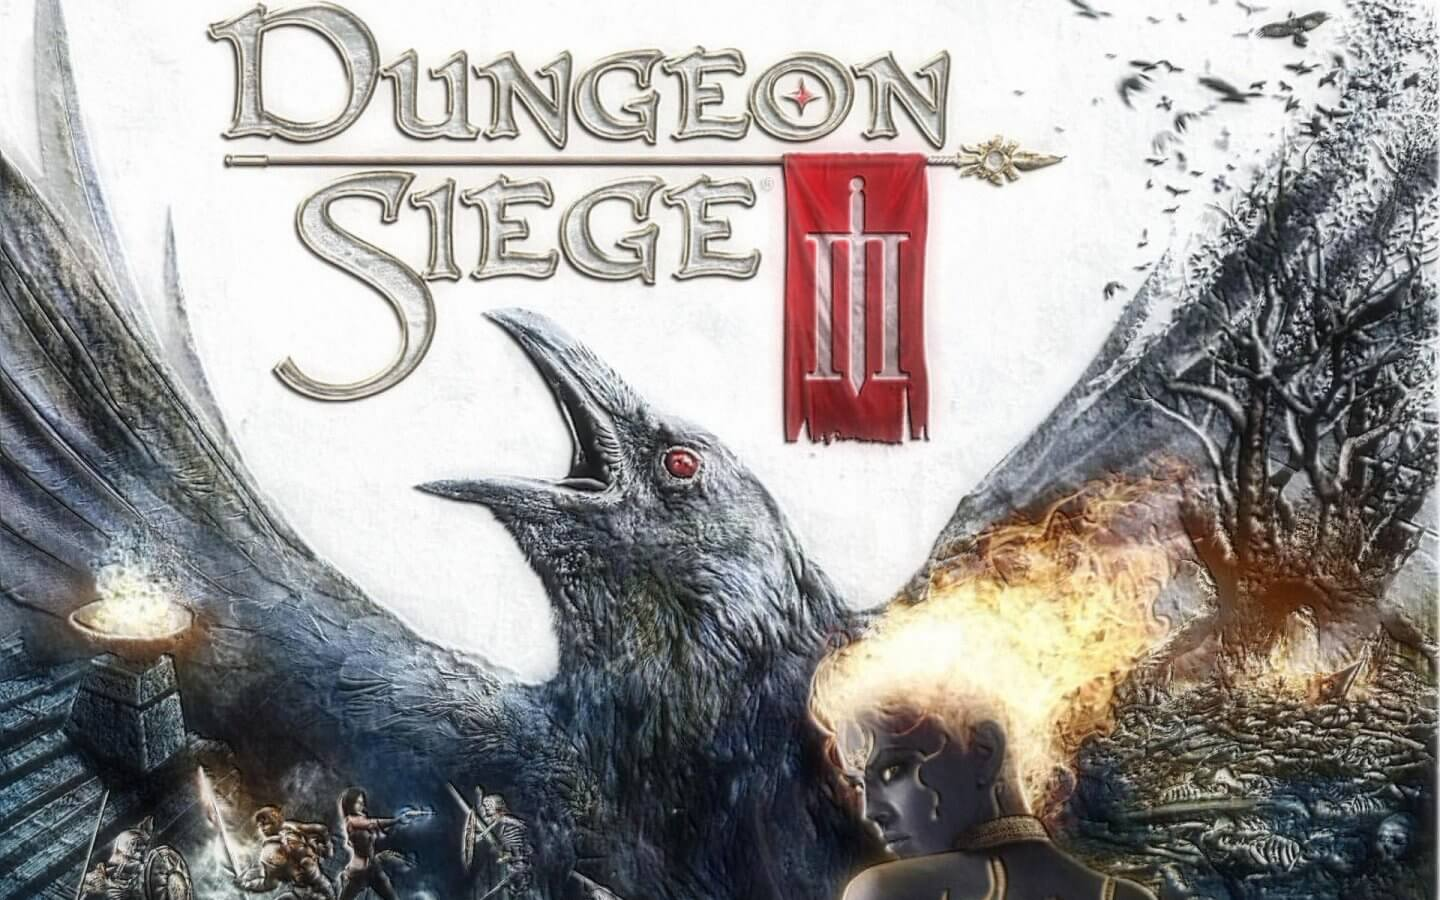 Dungeon Siege 3 Cheats and Trainers - Video Games, Wikis